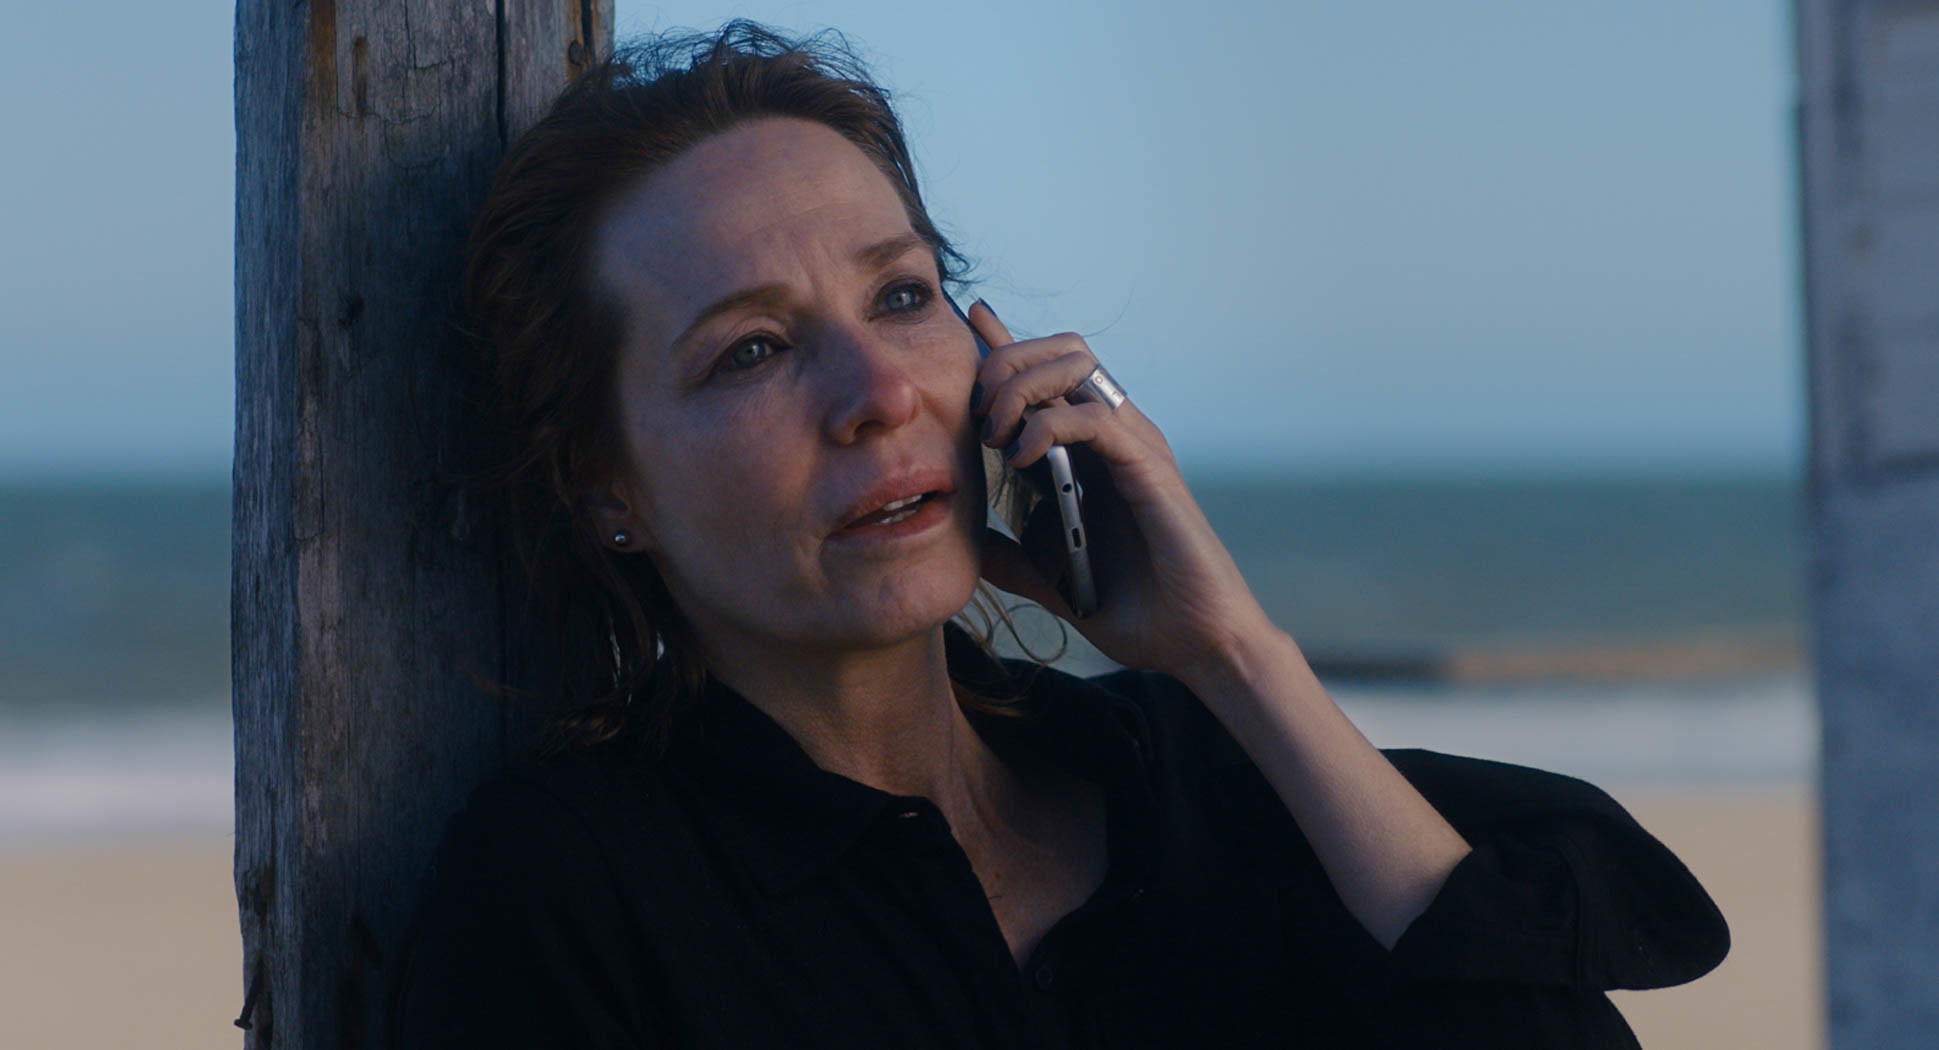 REVIEW: 'Marea Alta' Is a Quiet Character Study of a Woman on the Verge of a Nervous Breakdown